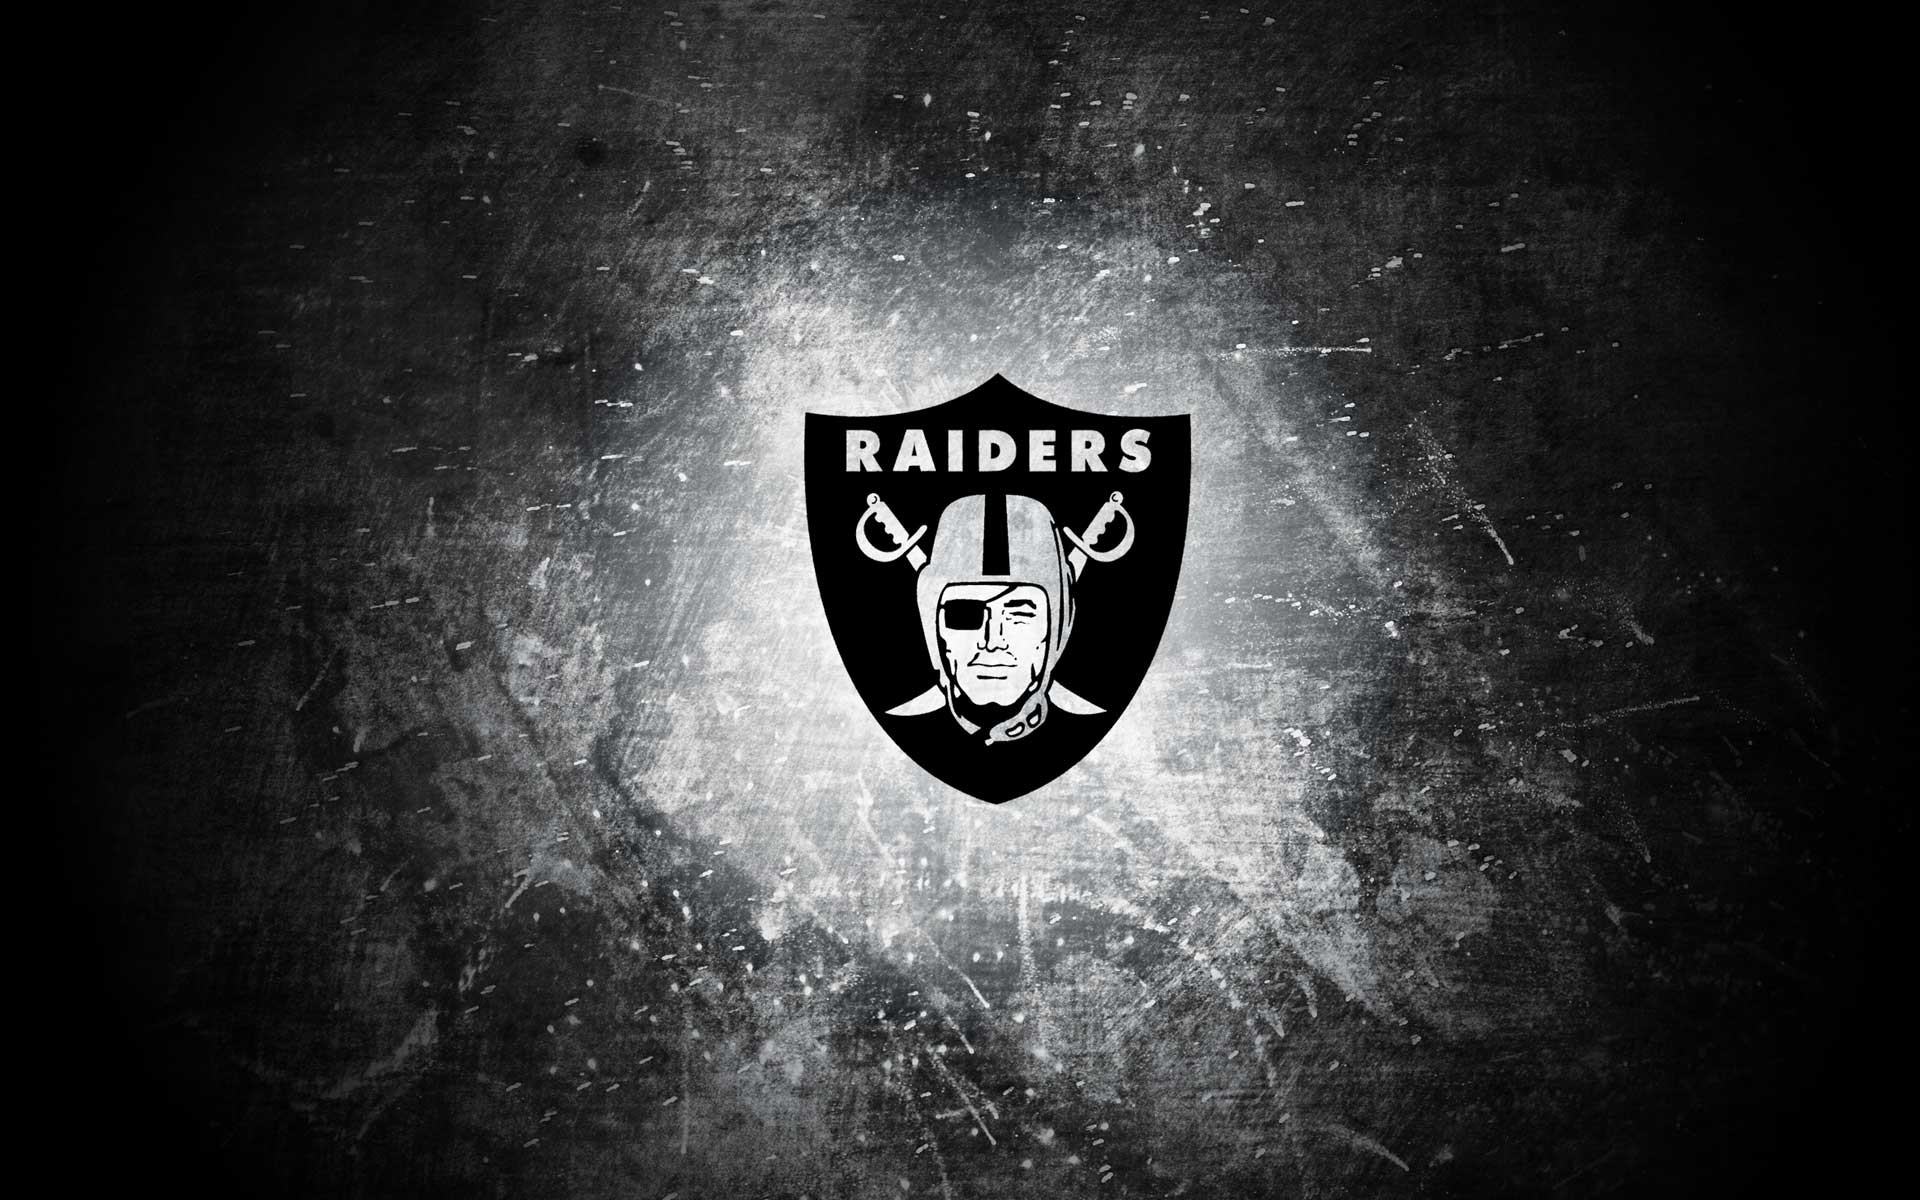 1920x1200 Raiders WallPaper HD - IMASHON.COM